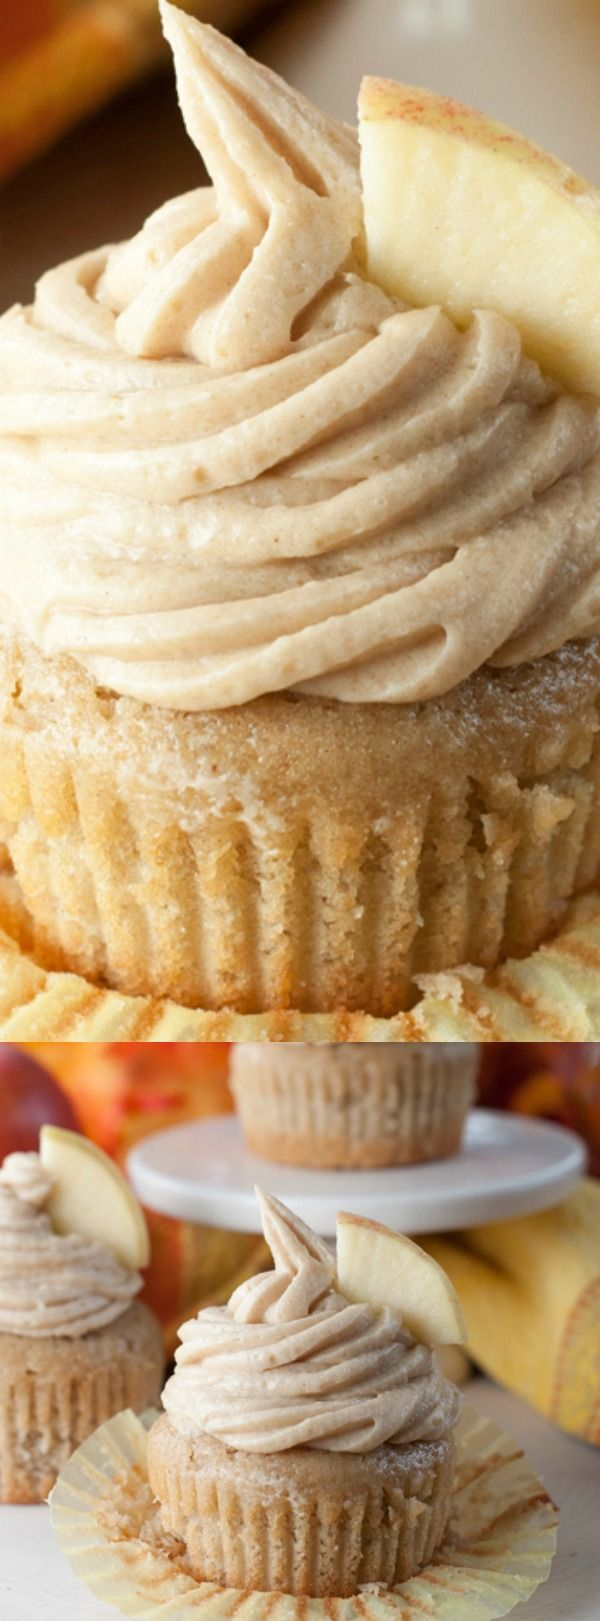 These Apple Cider Cupcakes with Brown Sugar Cinnamon Buttercream Frosting from Wishes and Dishes are the things that dessert dreams are made of.